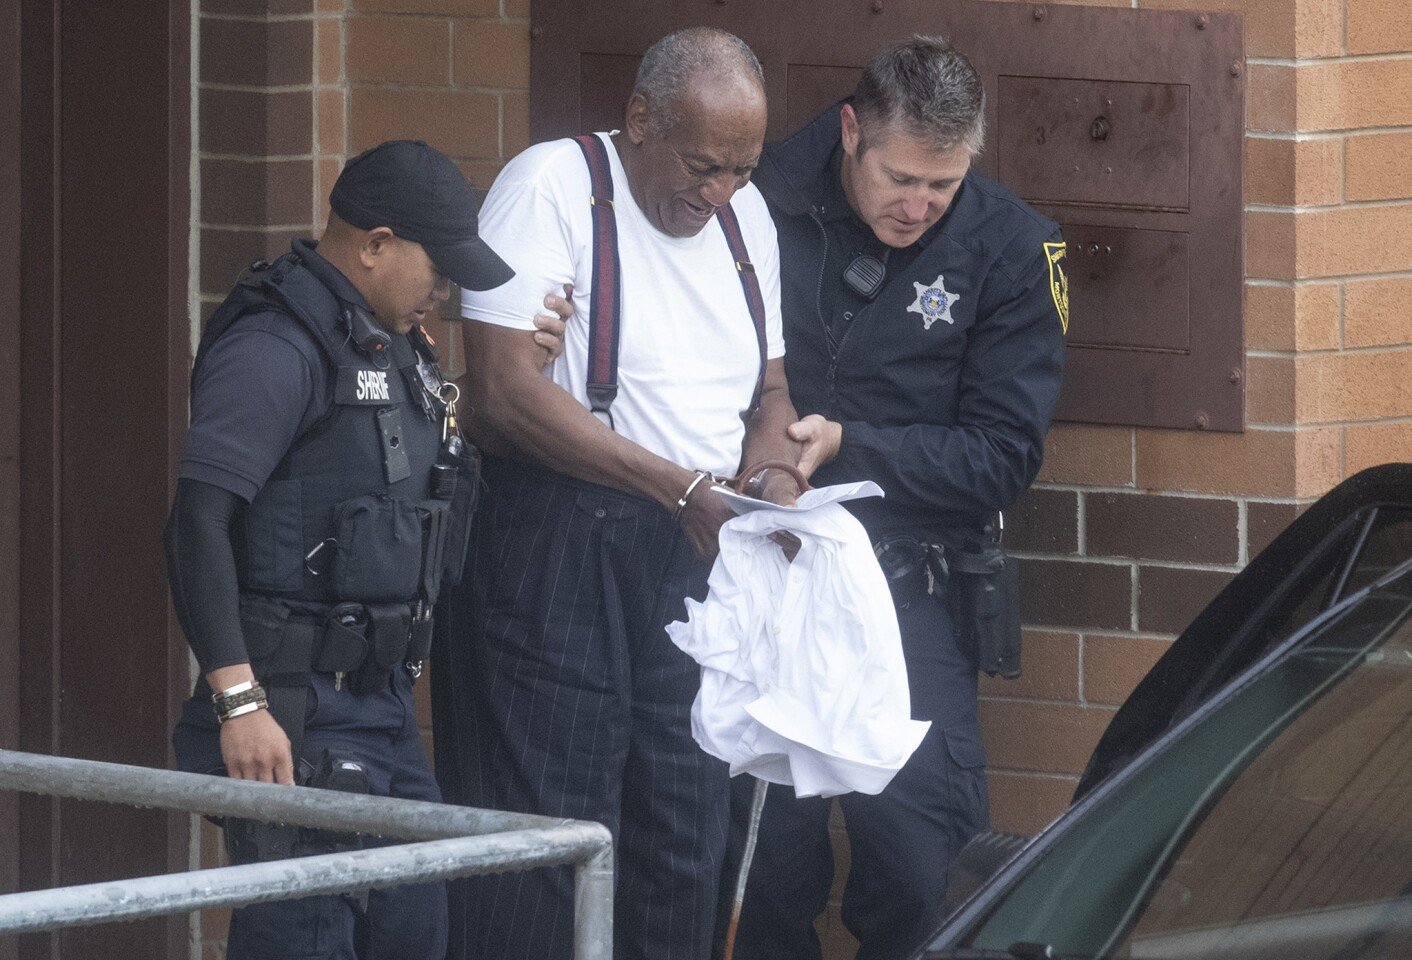 Actor and comedian Bill Cosby is led away in handcuffs from Montgomery County Correctional Facility in Norristown, Pa. after being sentenced to three to 10 years in prison for assaulting a woman at his home in 2004.